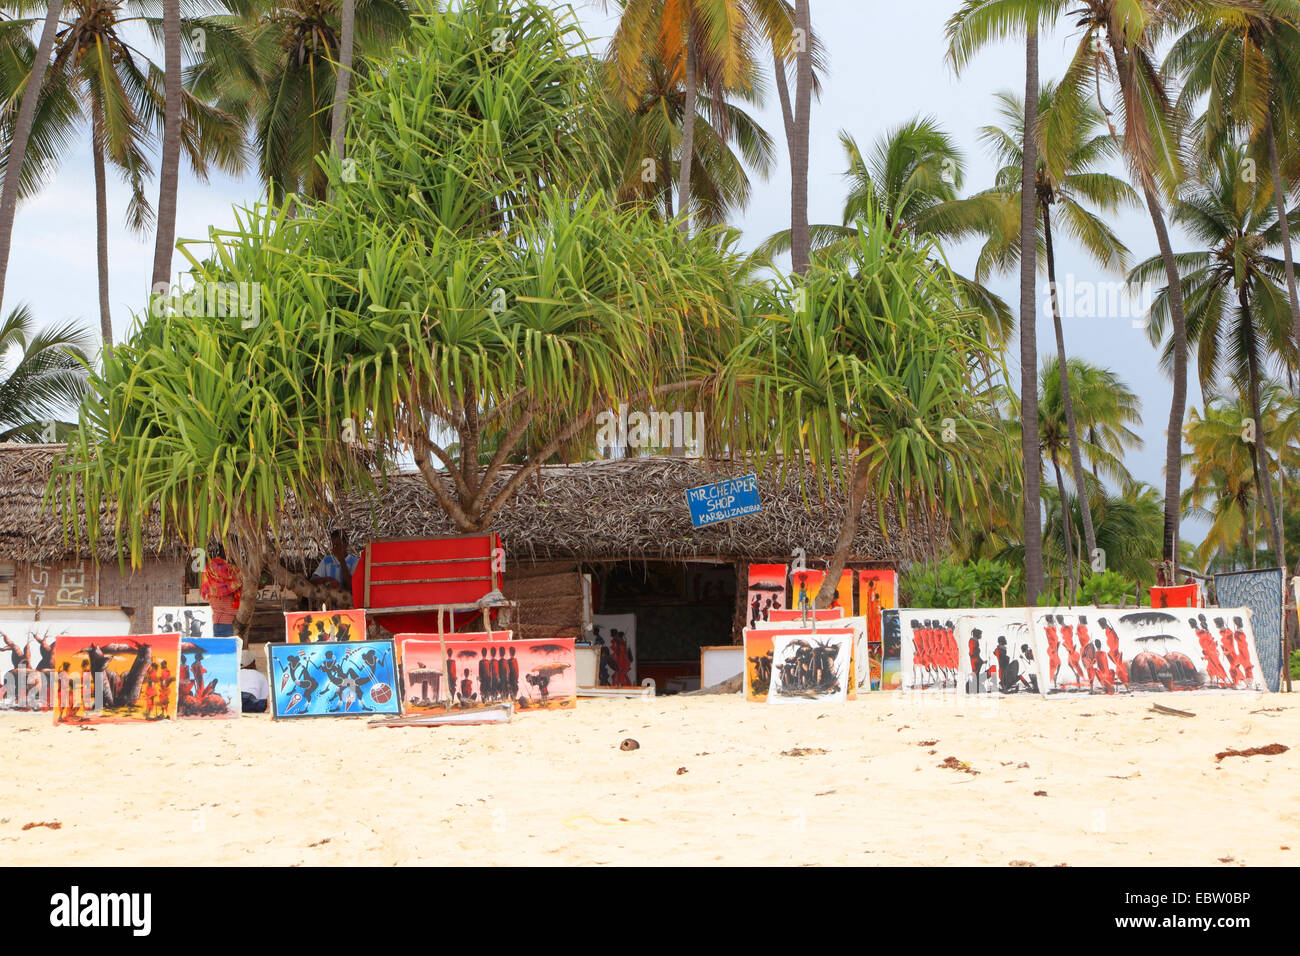 sales booth on the beach of the Indian Ocean, Tanzania, Sansibar - Stock Image